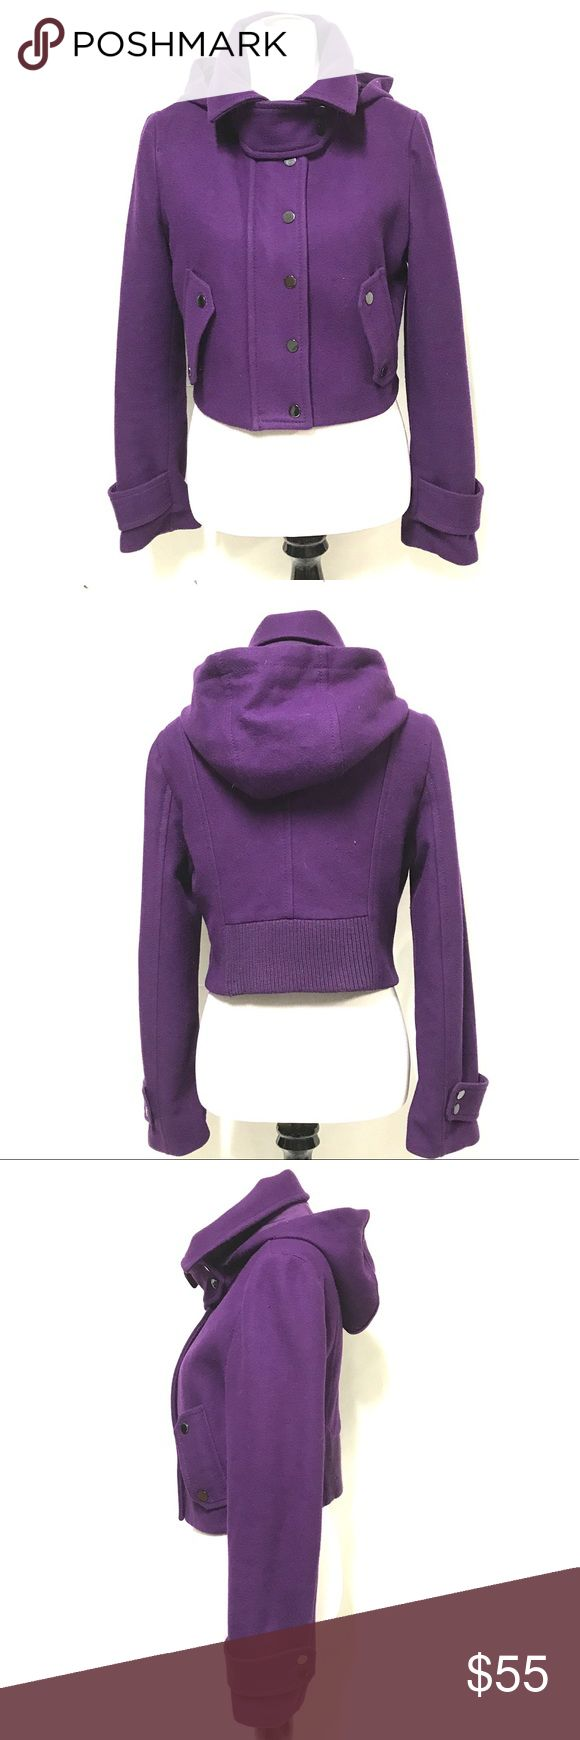 BCBG MAXAZRIA cropped coat-not bundle eligible Great saturated purple color. Wool blend. Zip up with snaps as a secondary closure. Attached hood.. This has no signs of wear at all.. Not bundle eligible. BCBGMaxAzria Jackets & Coats